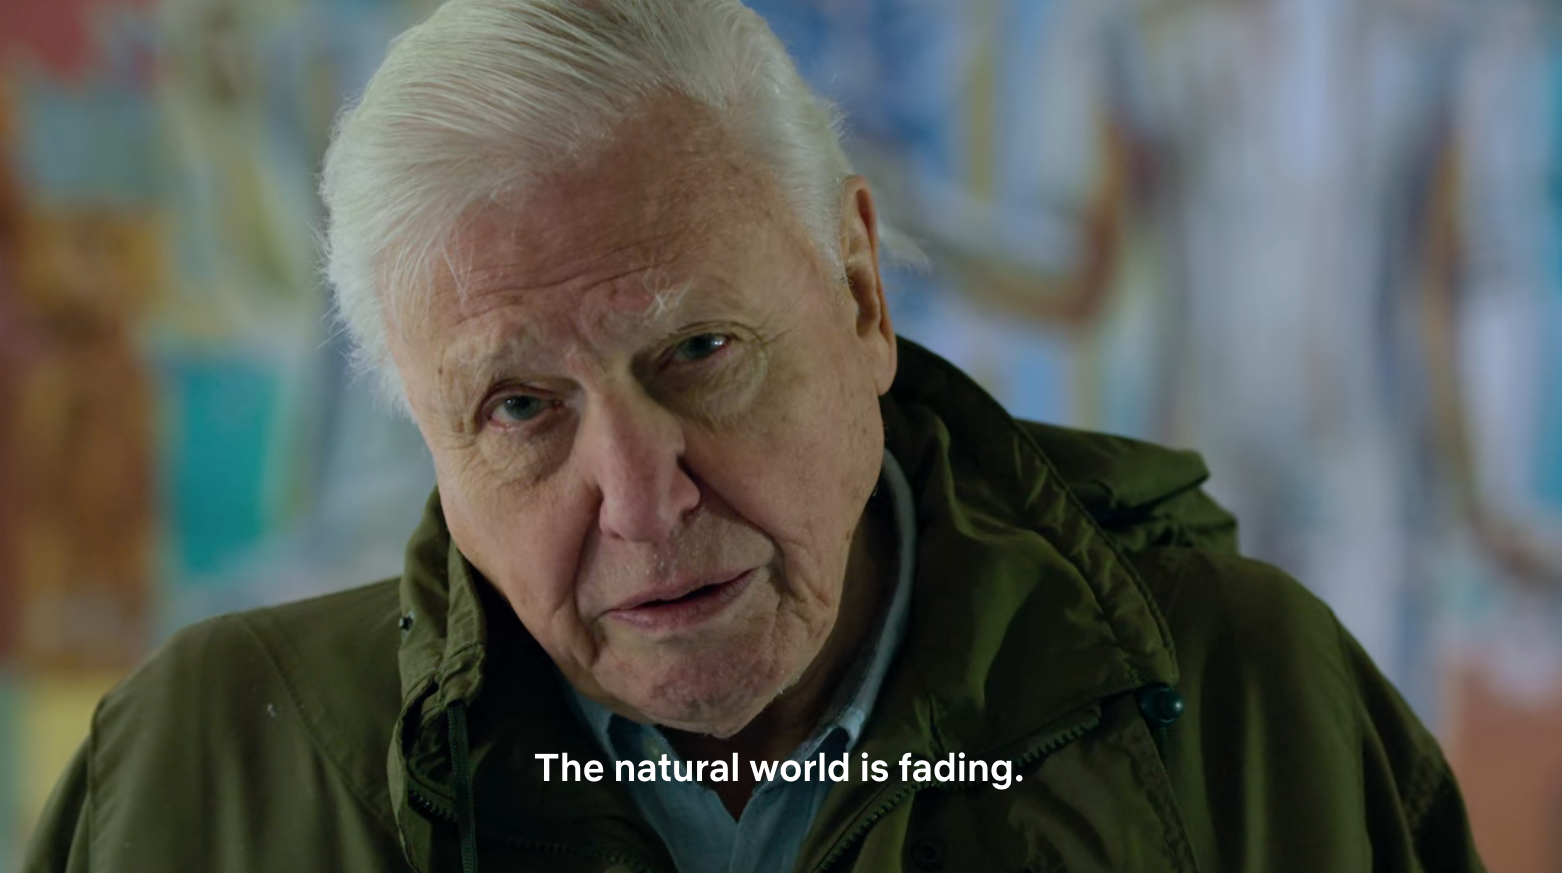 """Close up shot of David Attenborough with caption: """"The natural world is fading."""""""